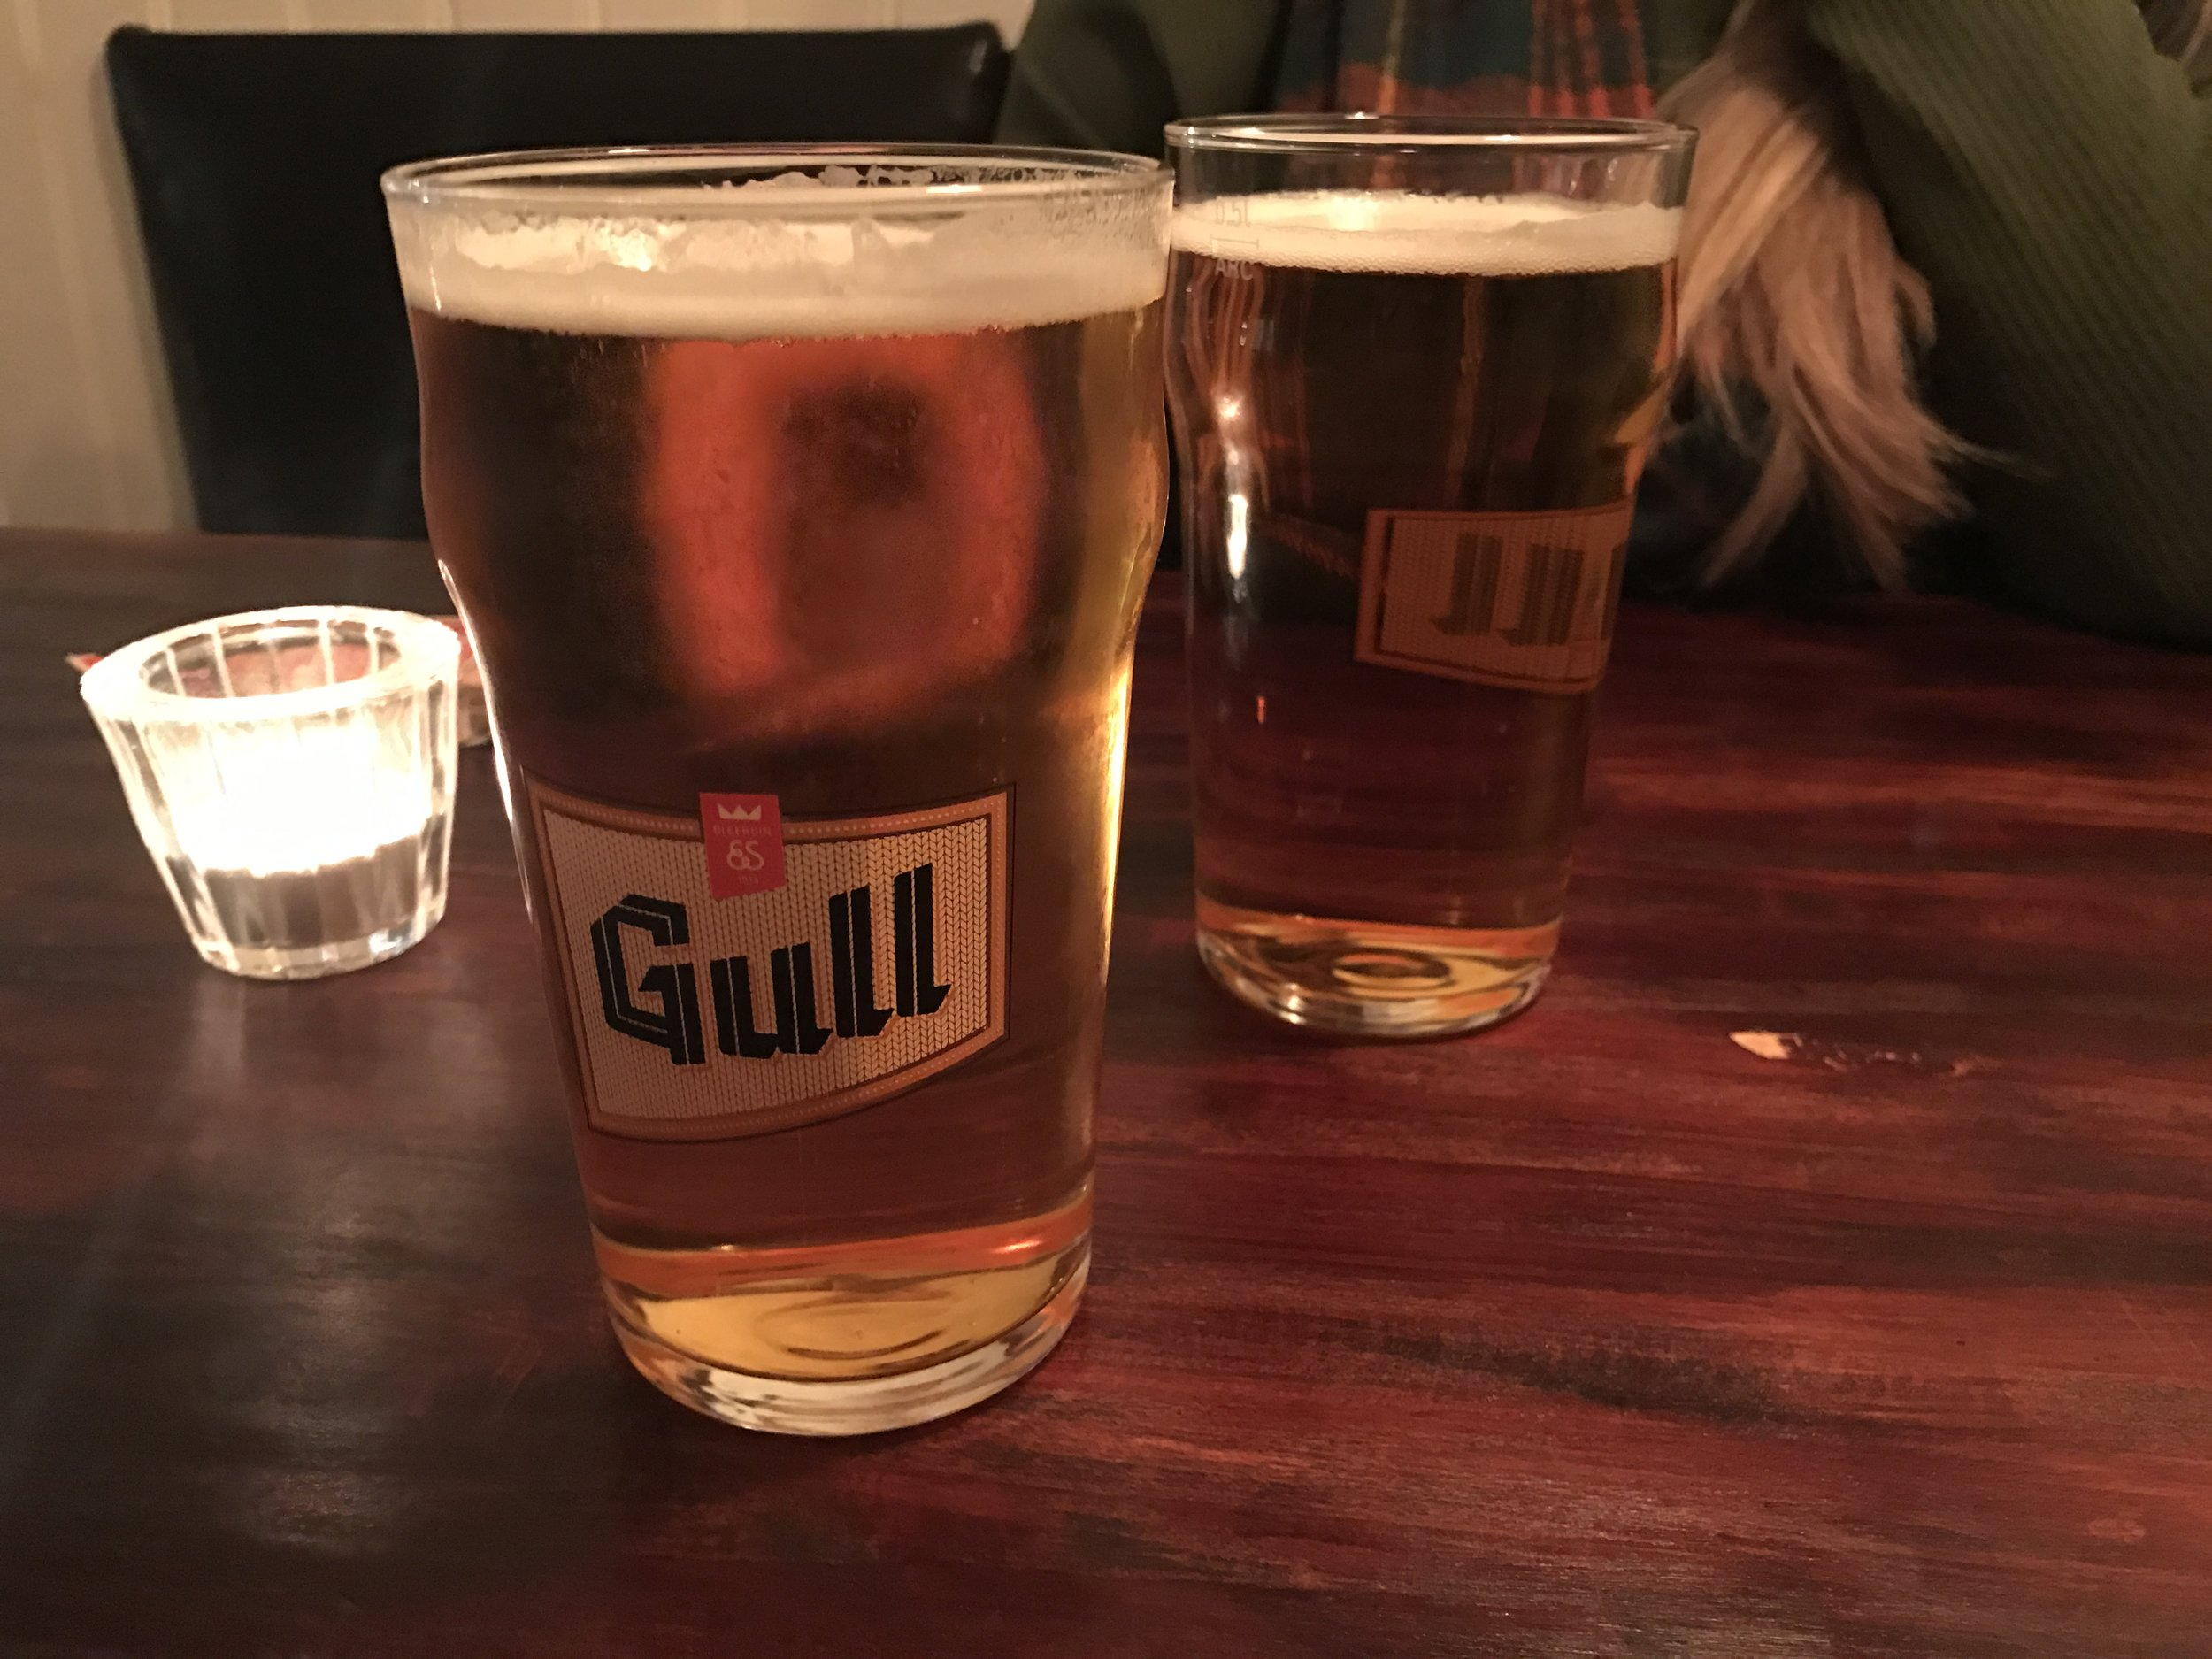 Half litres of Gull are available on the cheap at A Bar on Laugavegur from 22:00-02:00.